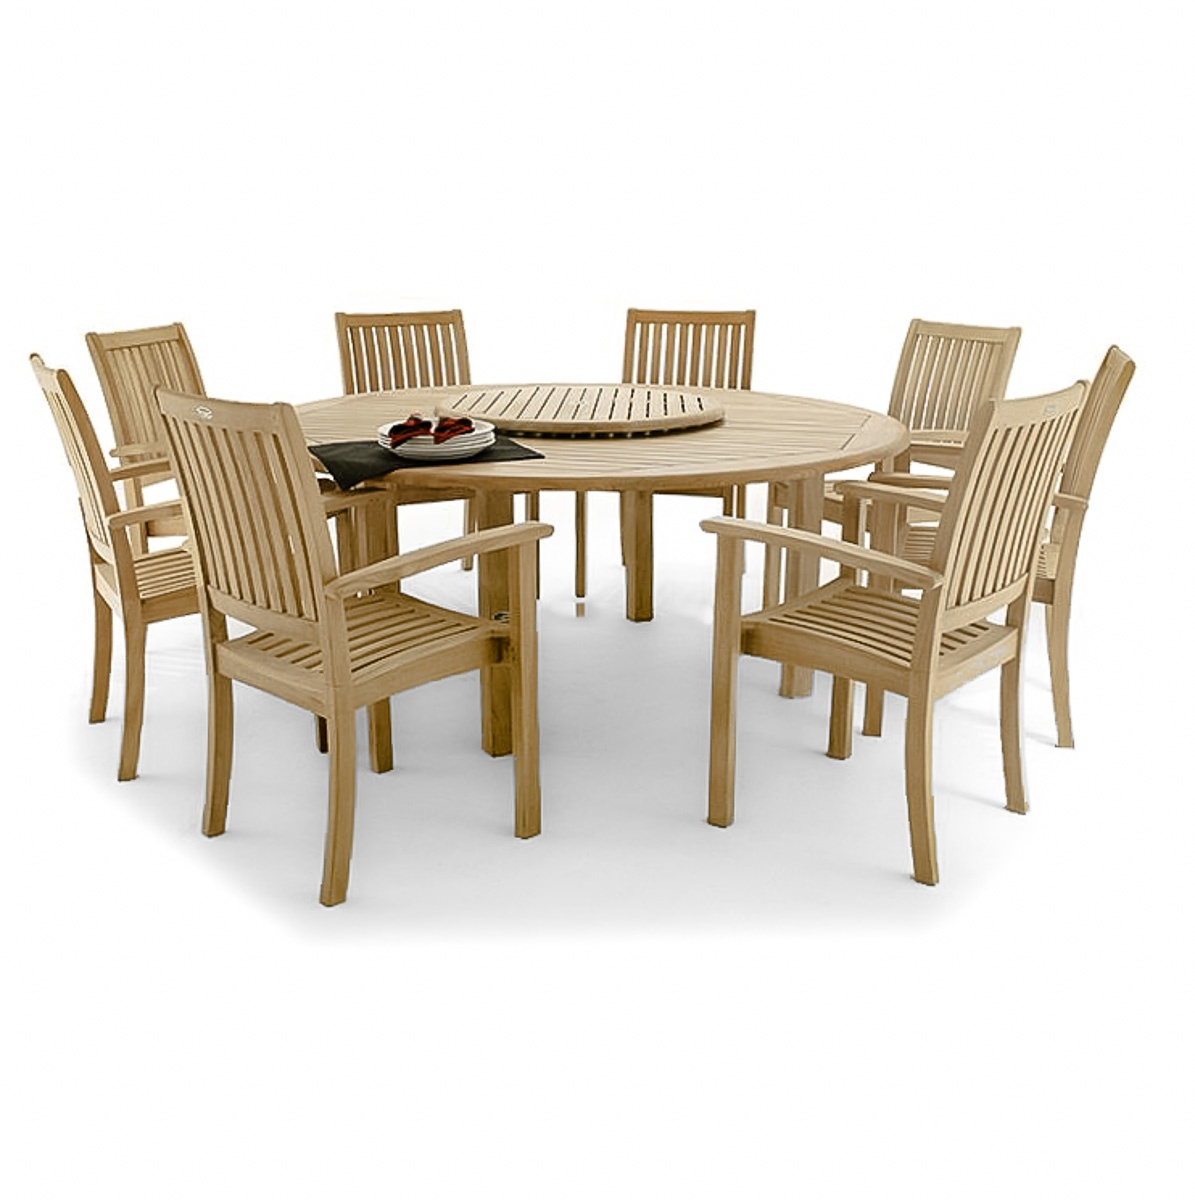 Large round teak dining set for 8 westminster teak outdoor furniture - Round teak table and chairs ...